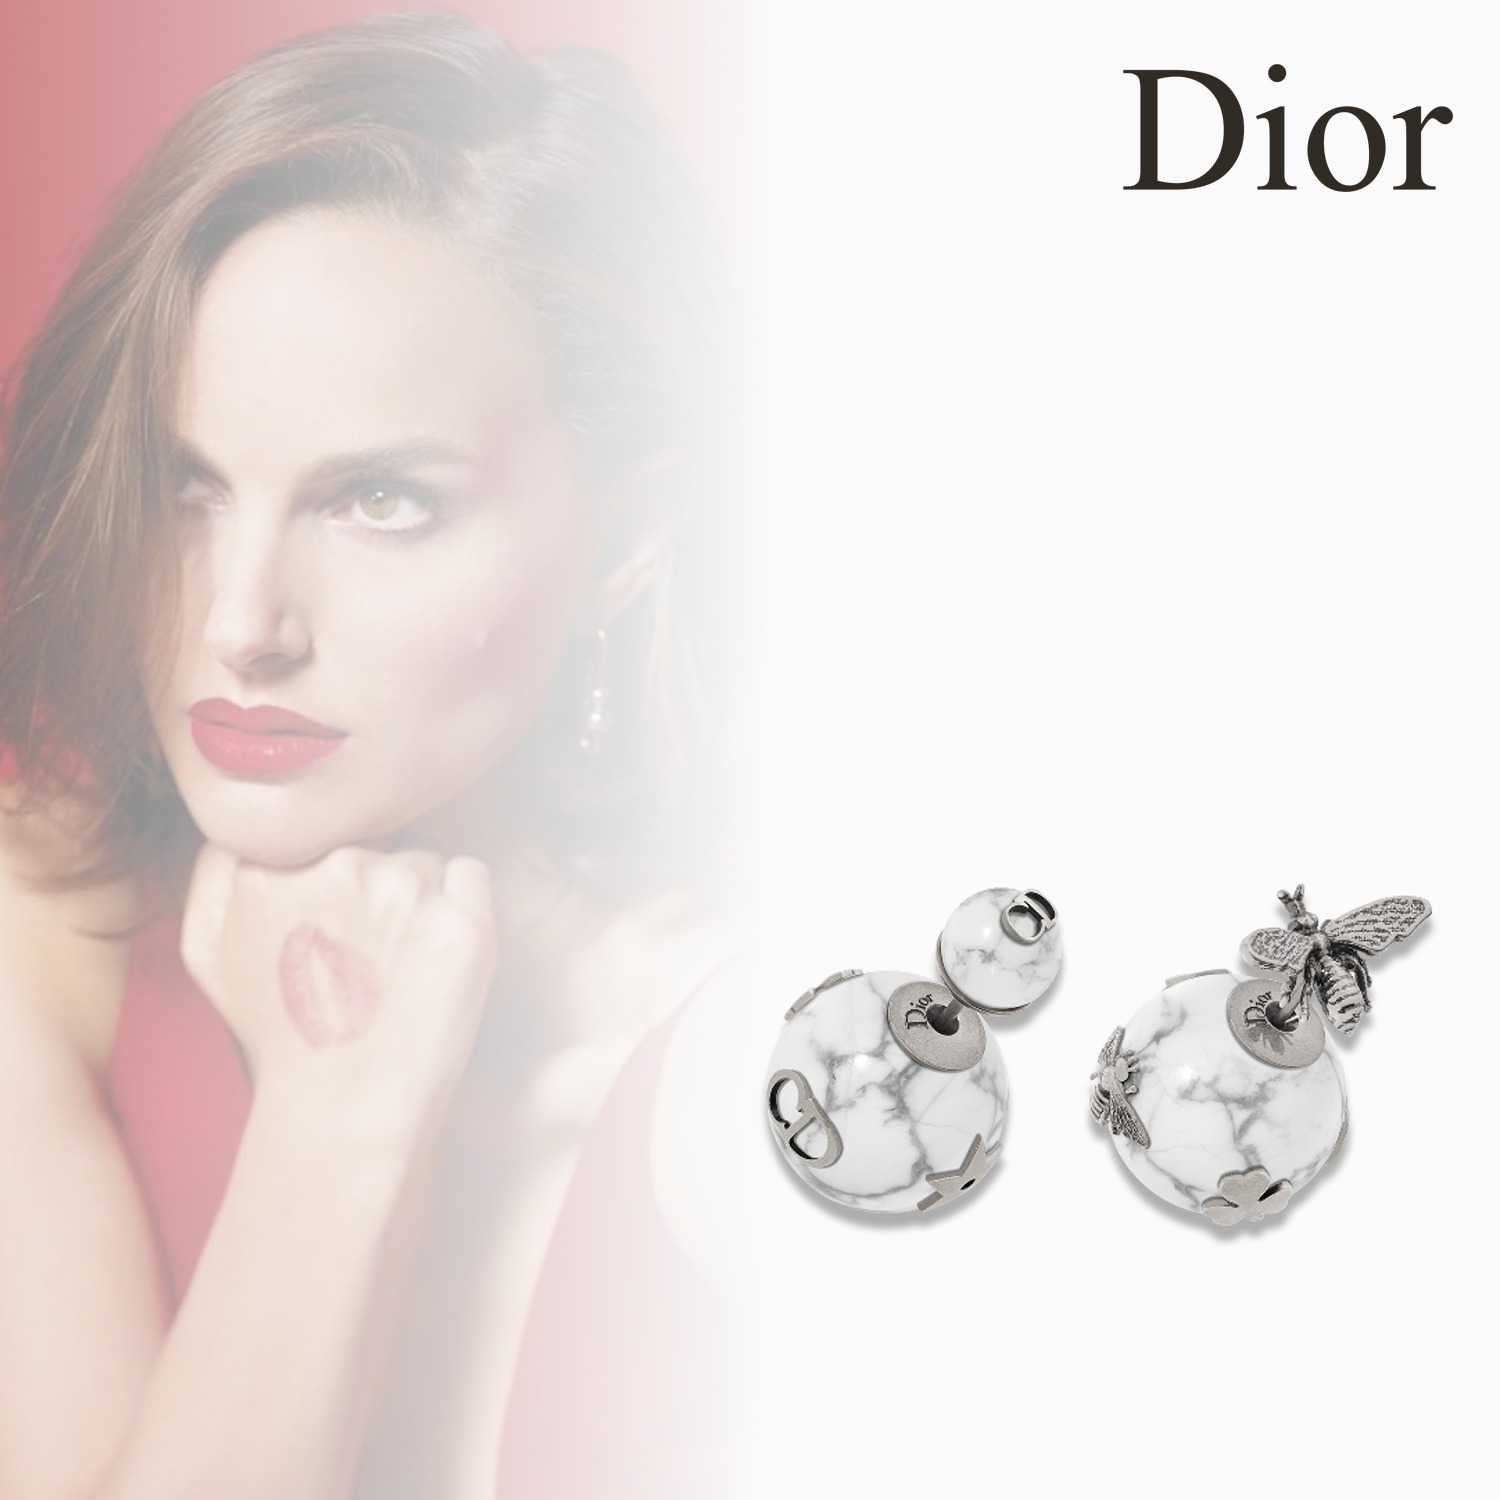 2018 Cruise★Christian Dior★Dior Tribales ピアス